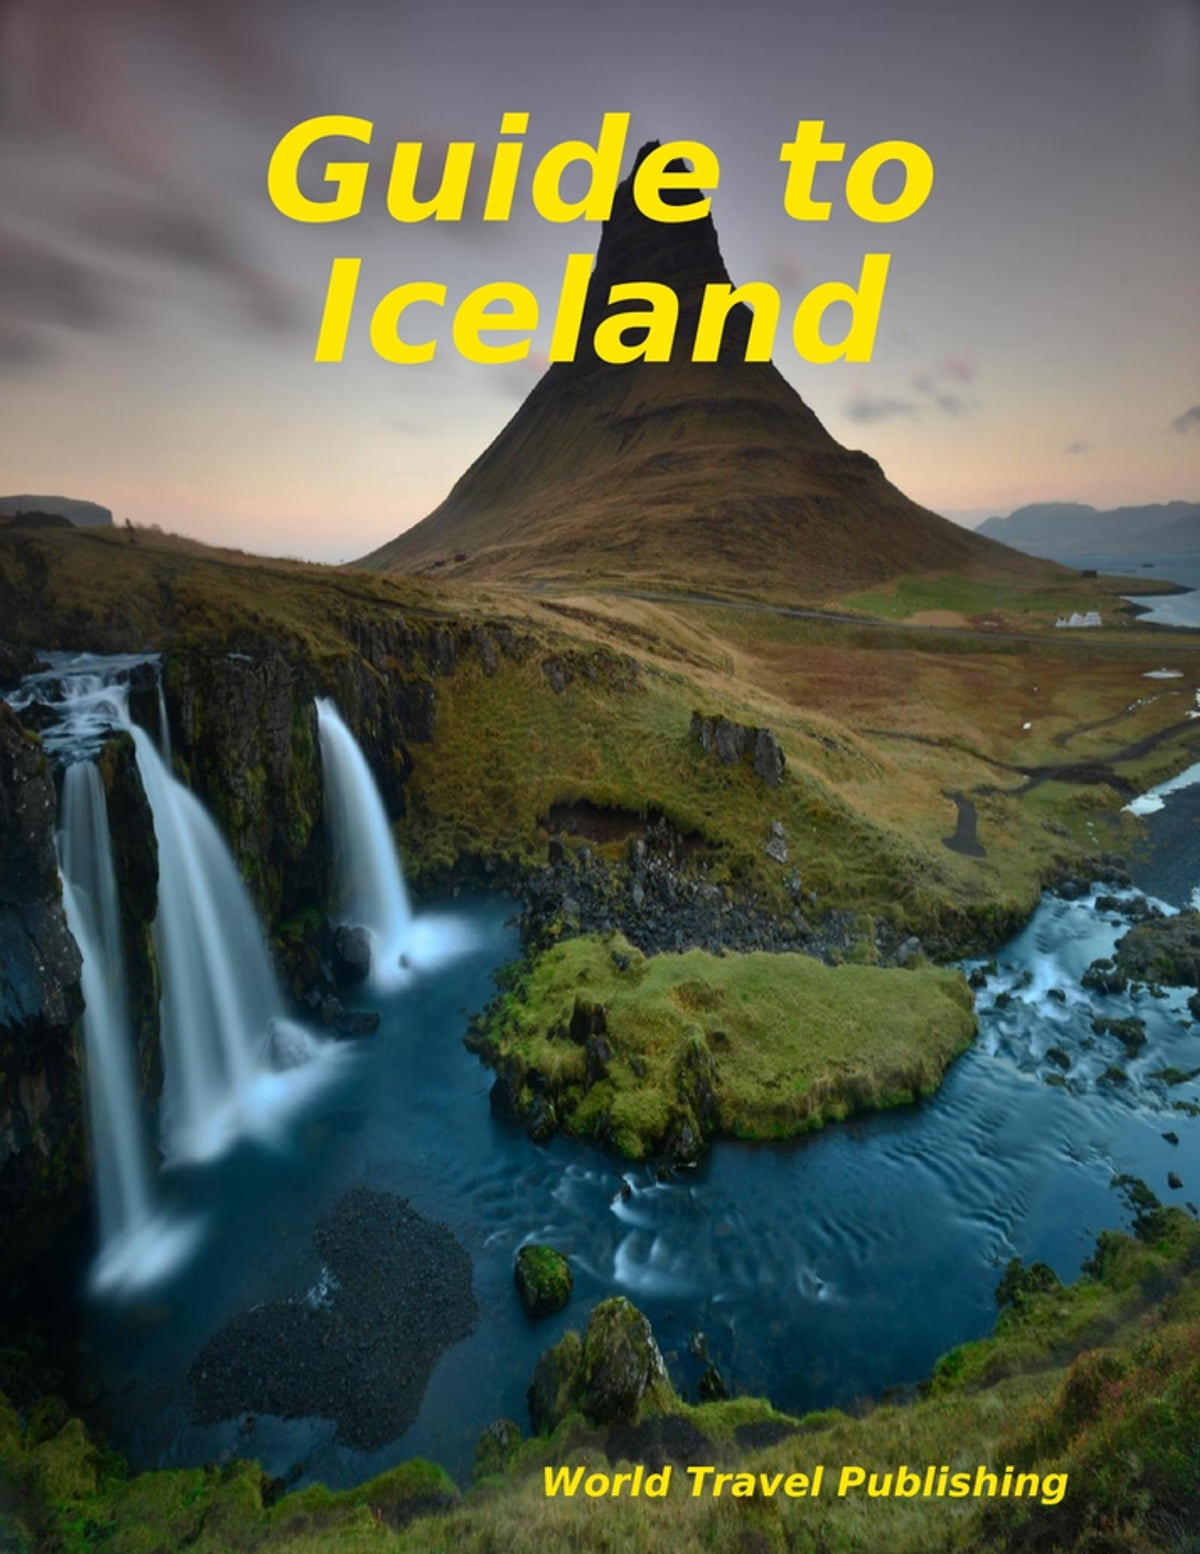 guide to iceland ebook by world travel publishing - 9780244404796